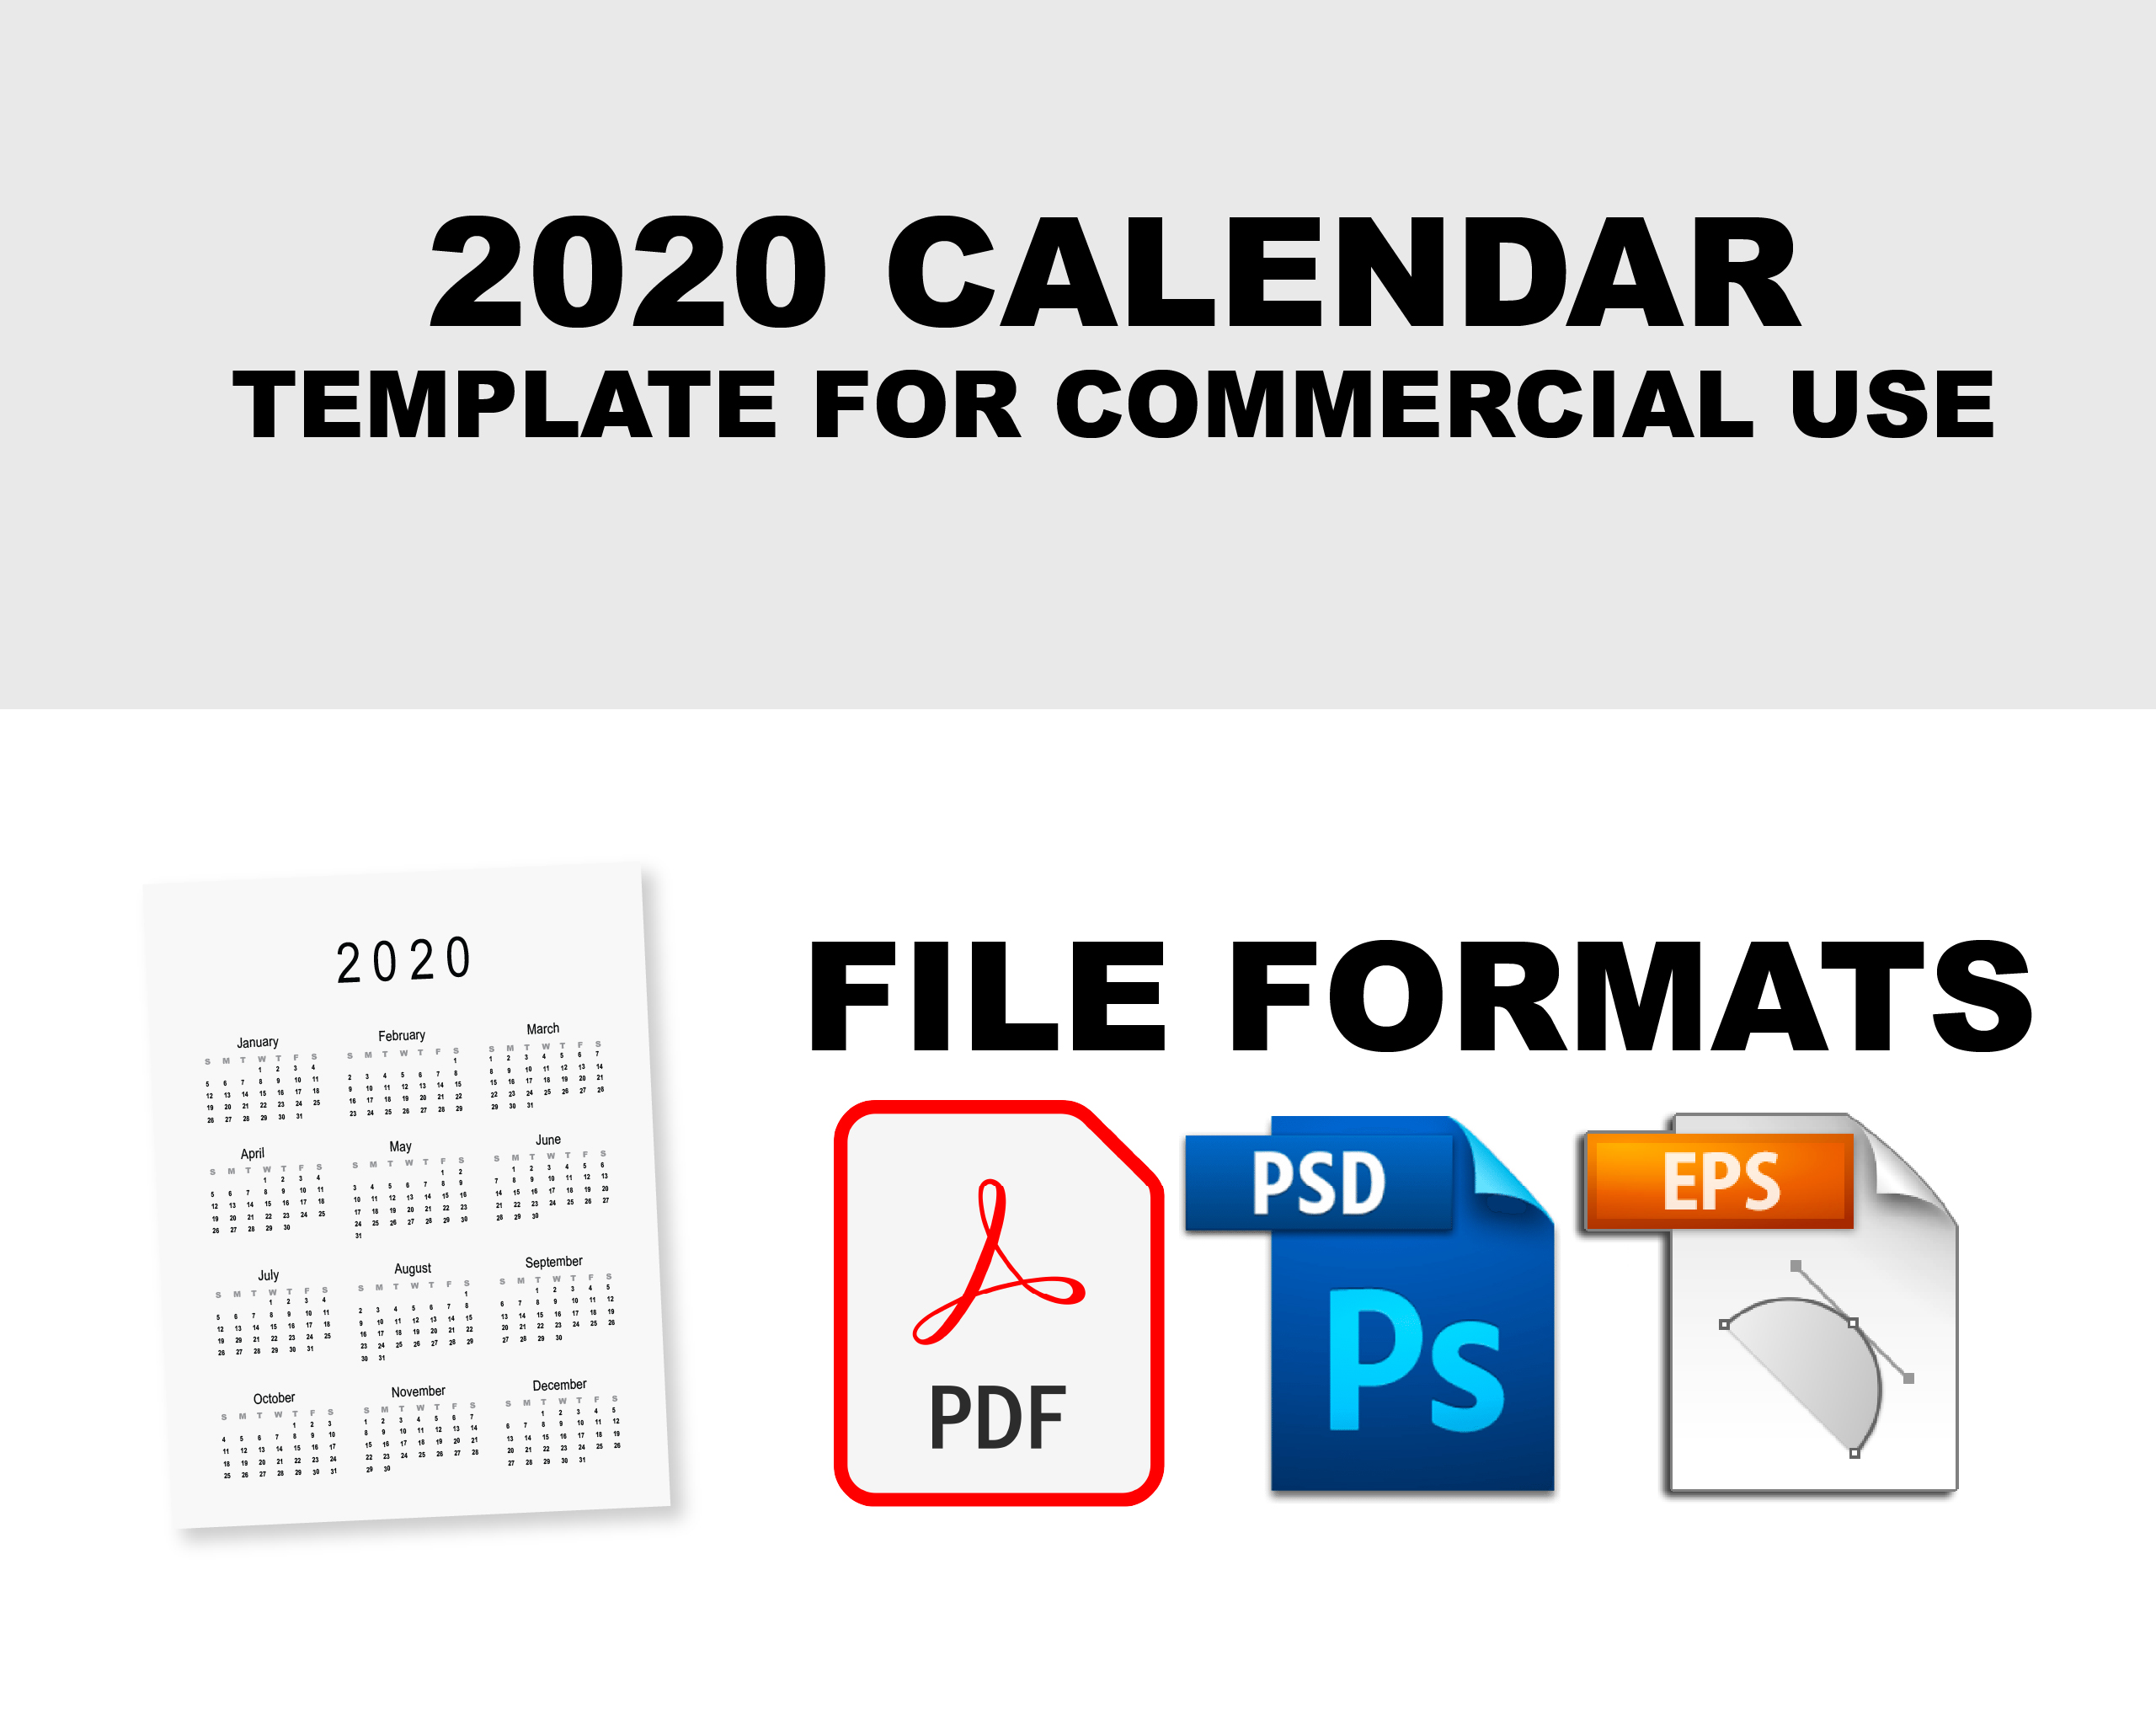 2020 Calendar Template for Commercial Use - PSD, EPS, PDF example image 5